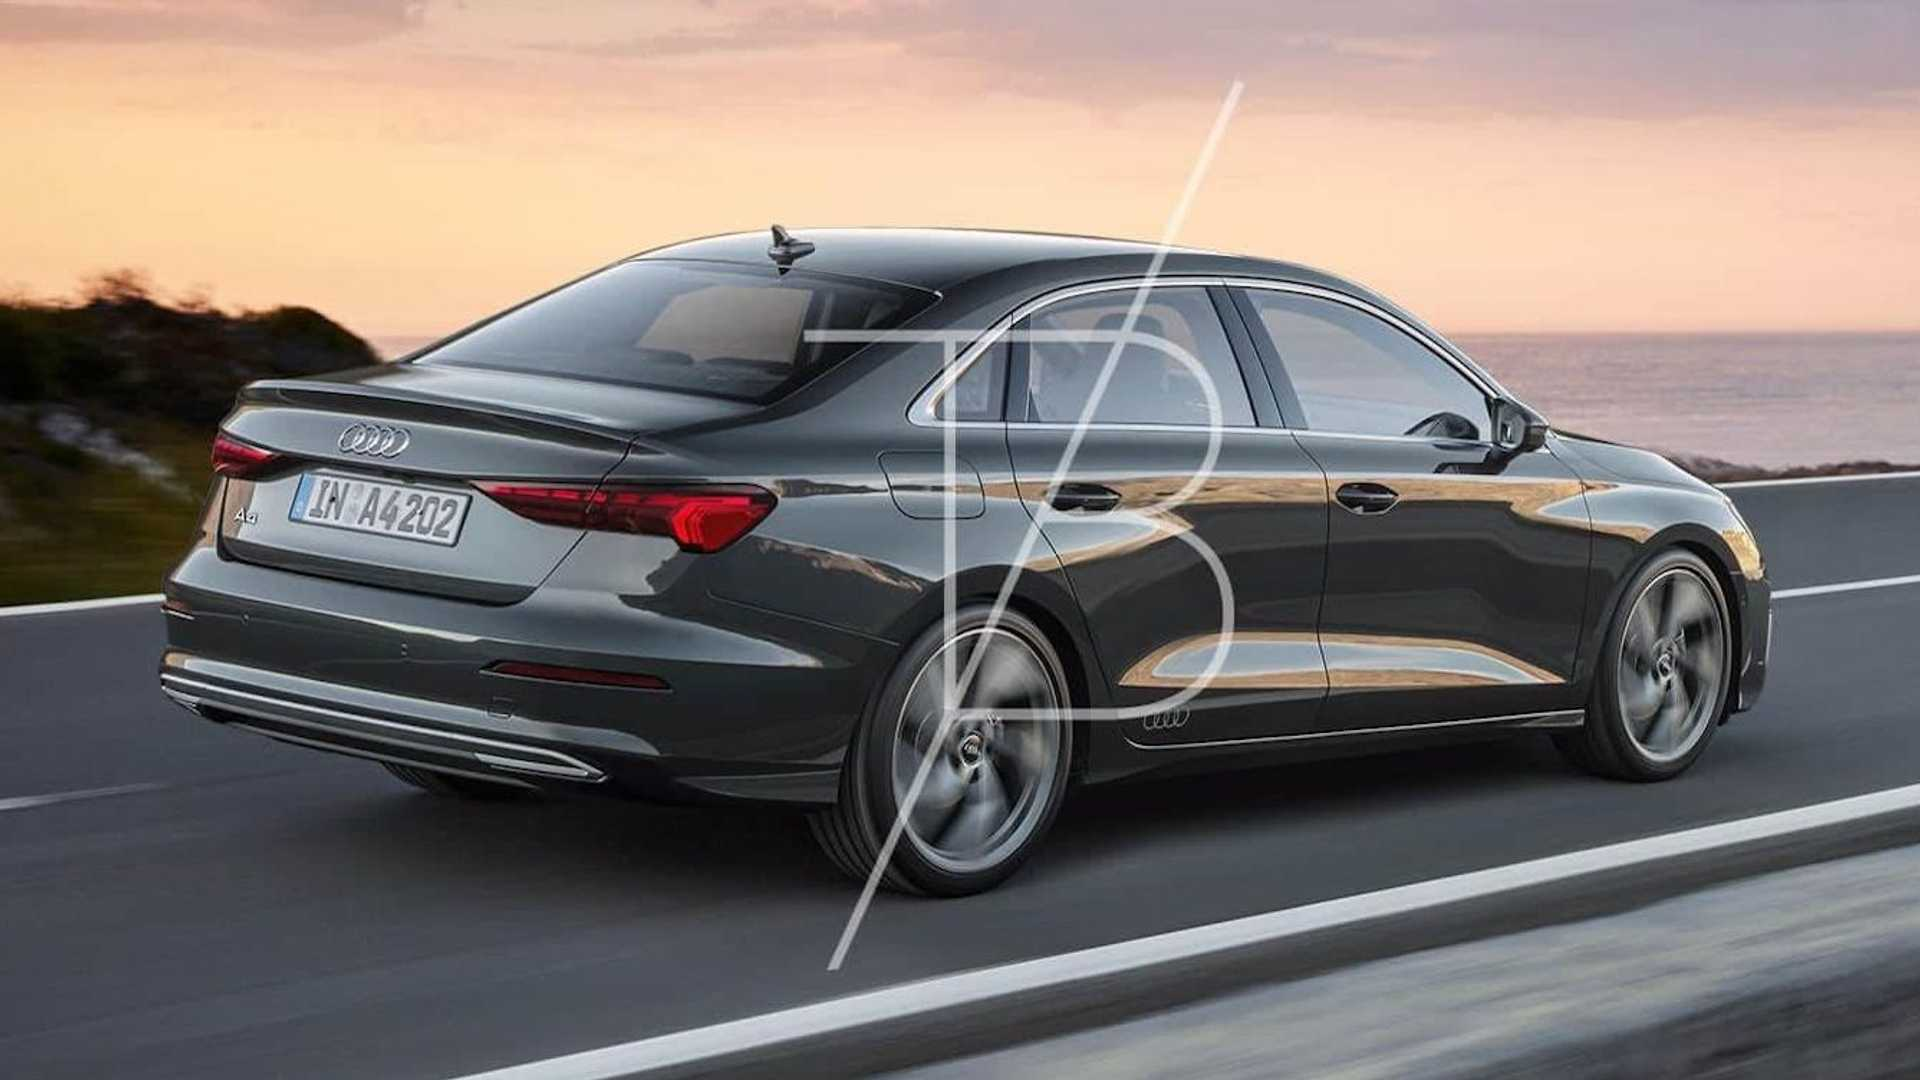 2022 audi a4 renderings preview an evolutionary design update